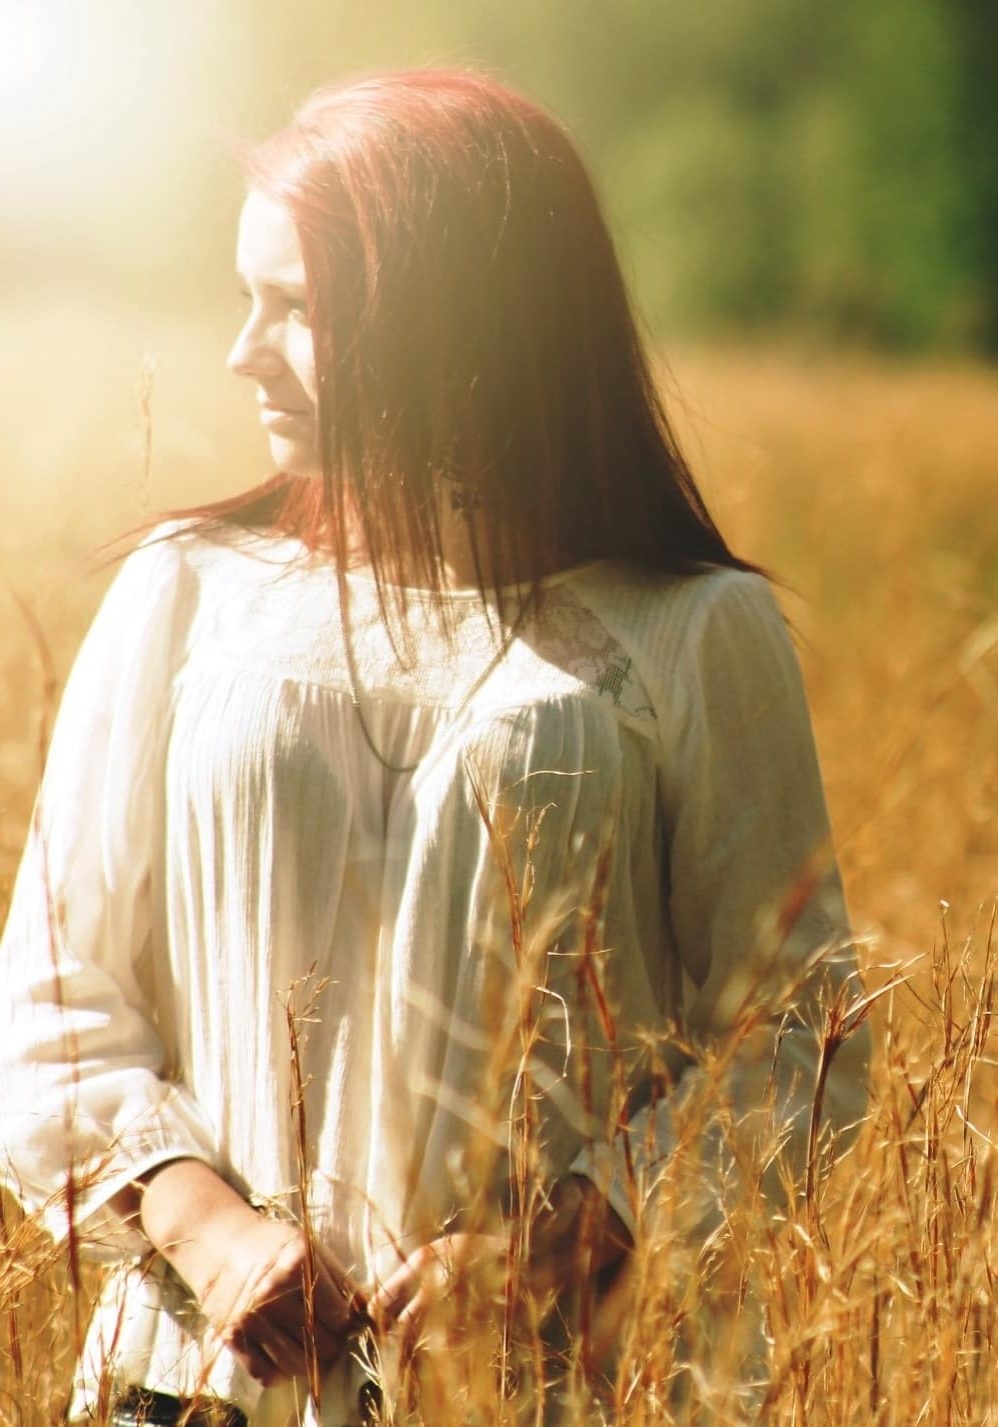 Canva - Woman Wearing White Long Sleeved Shirt Standing in Brown Grass Field